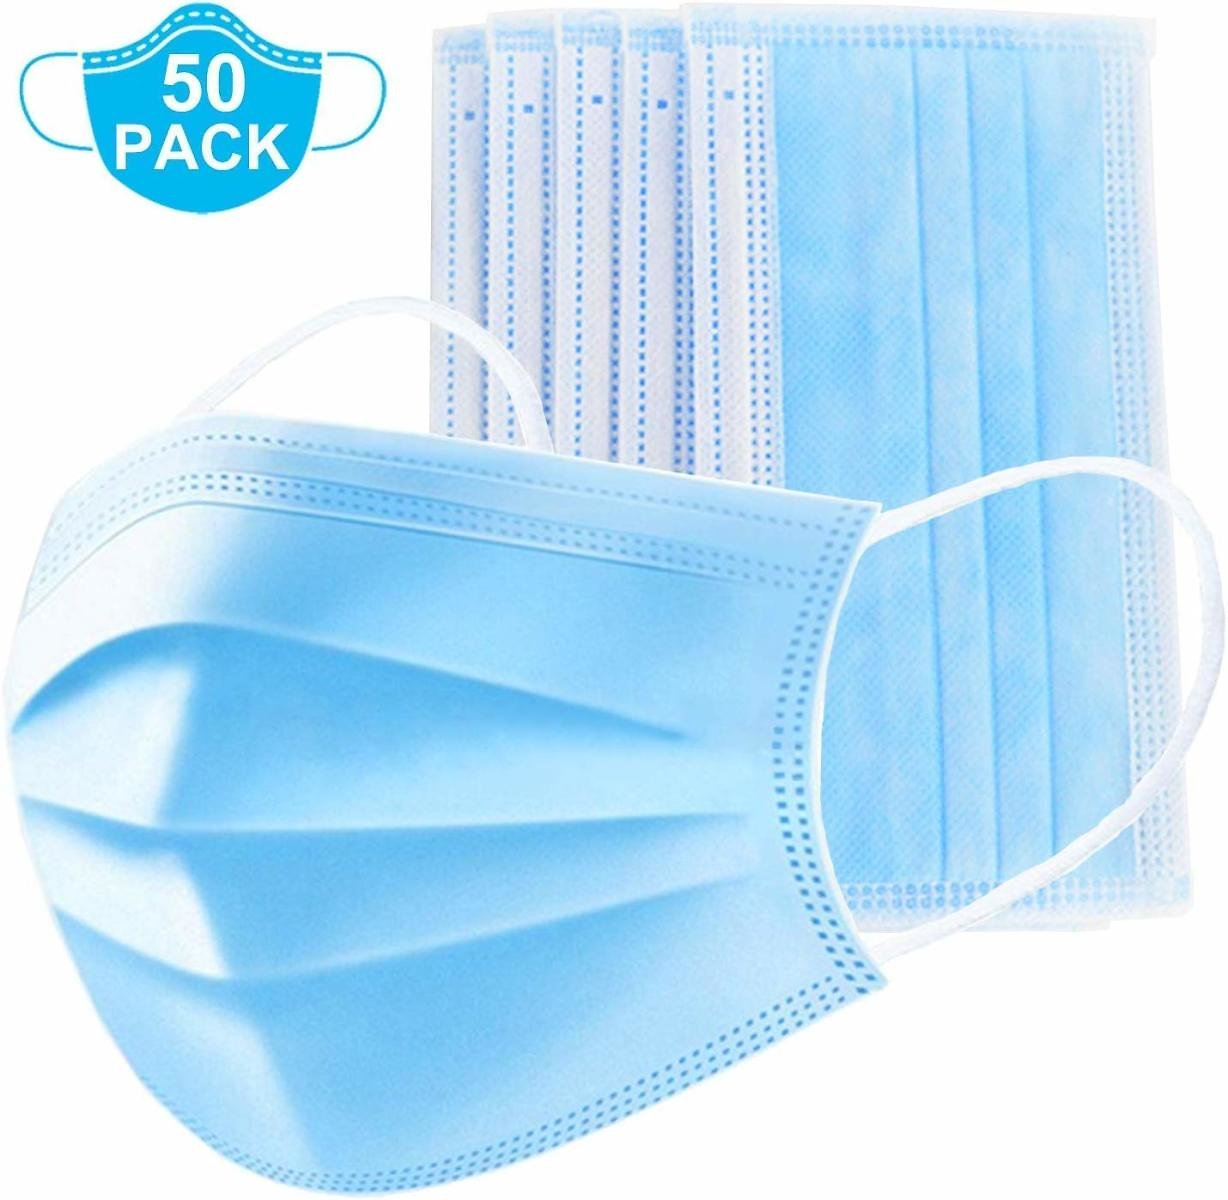 50 Pack of 3-Ply Disposable Face Masks With Bendable Nose Pieces - FDA CERTIFIED FACTORY